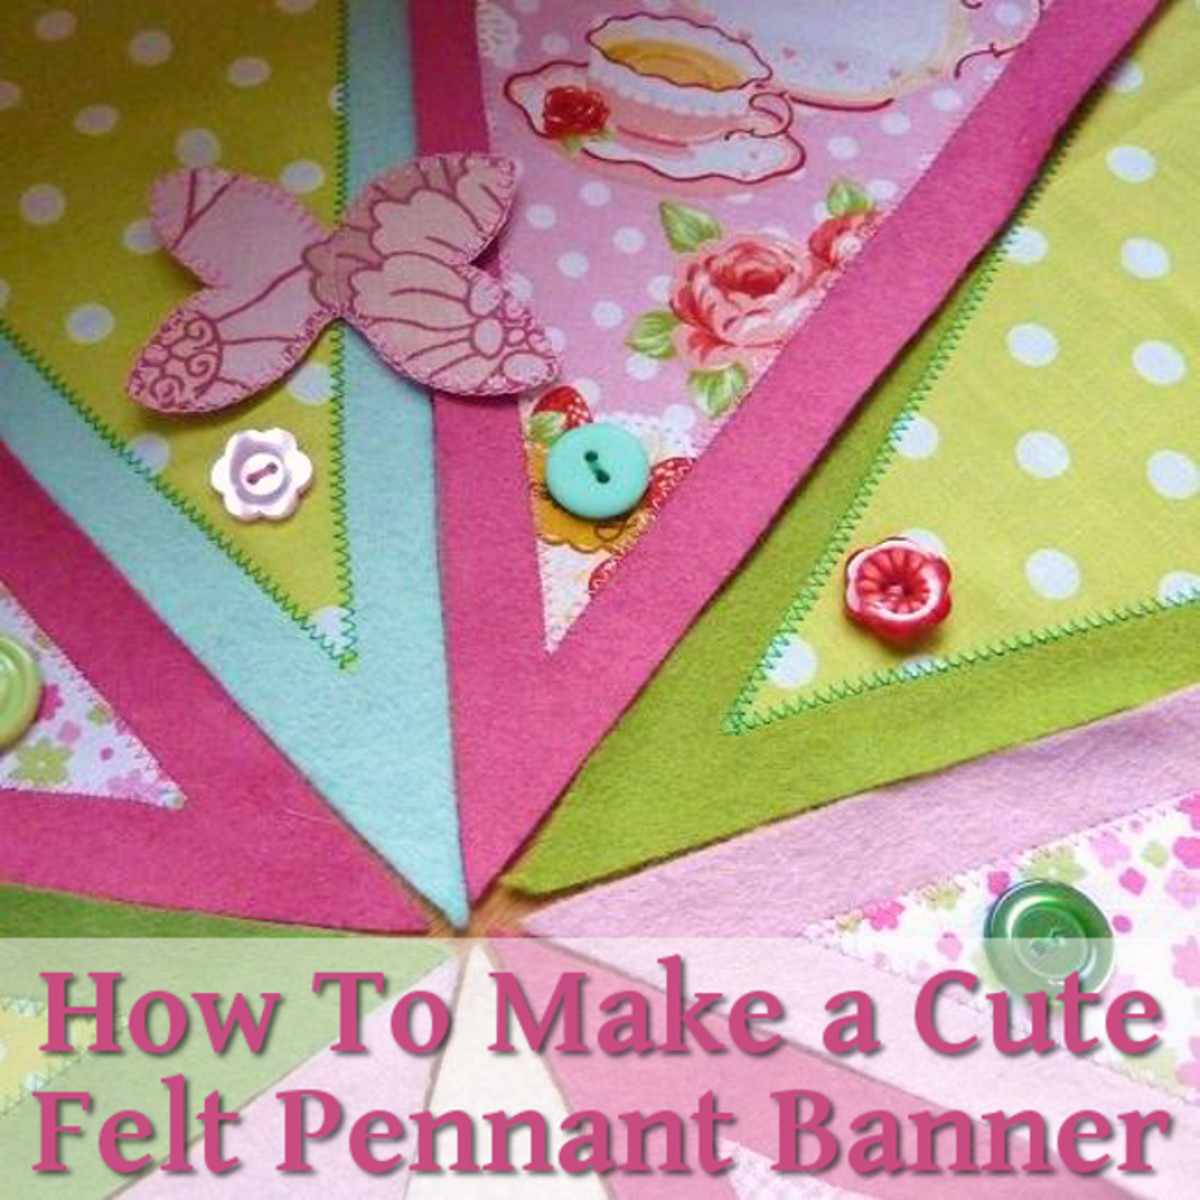 Instructions to make a banner out of felt and fabric